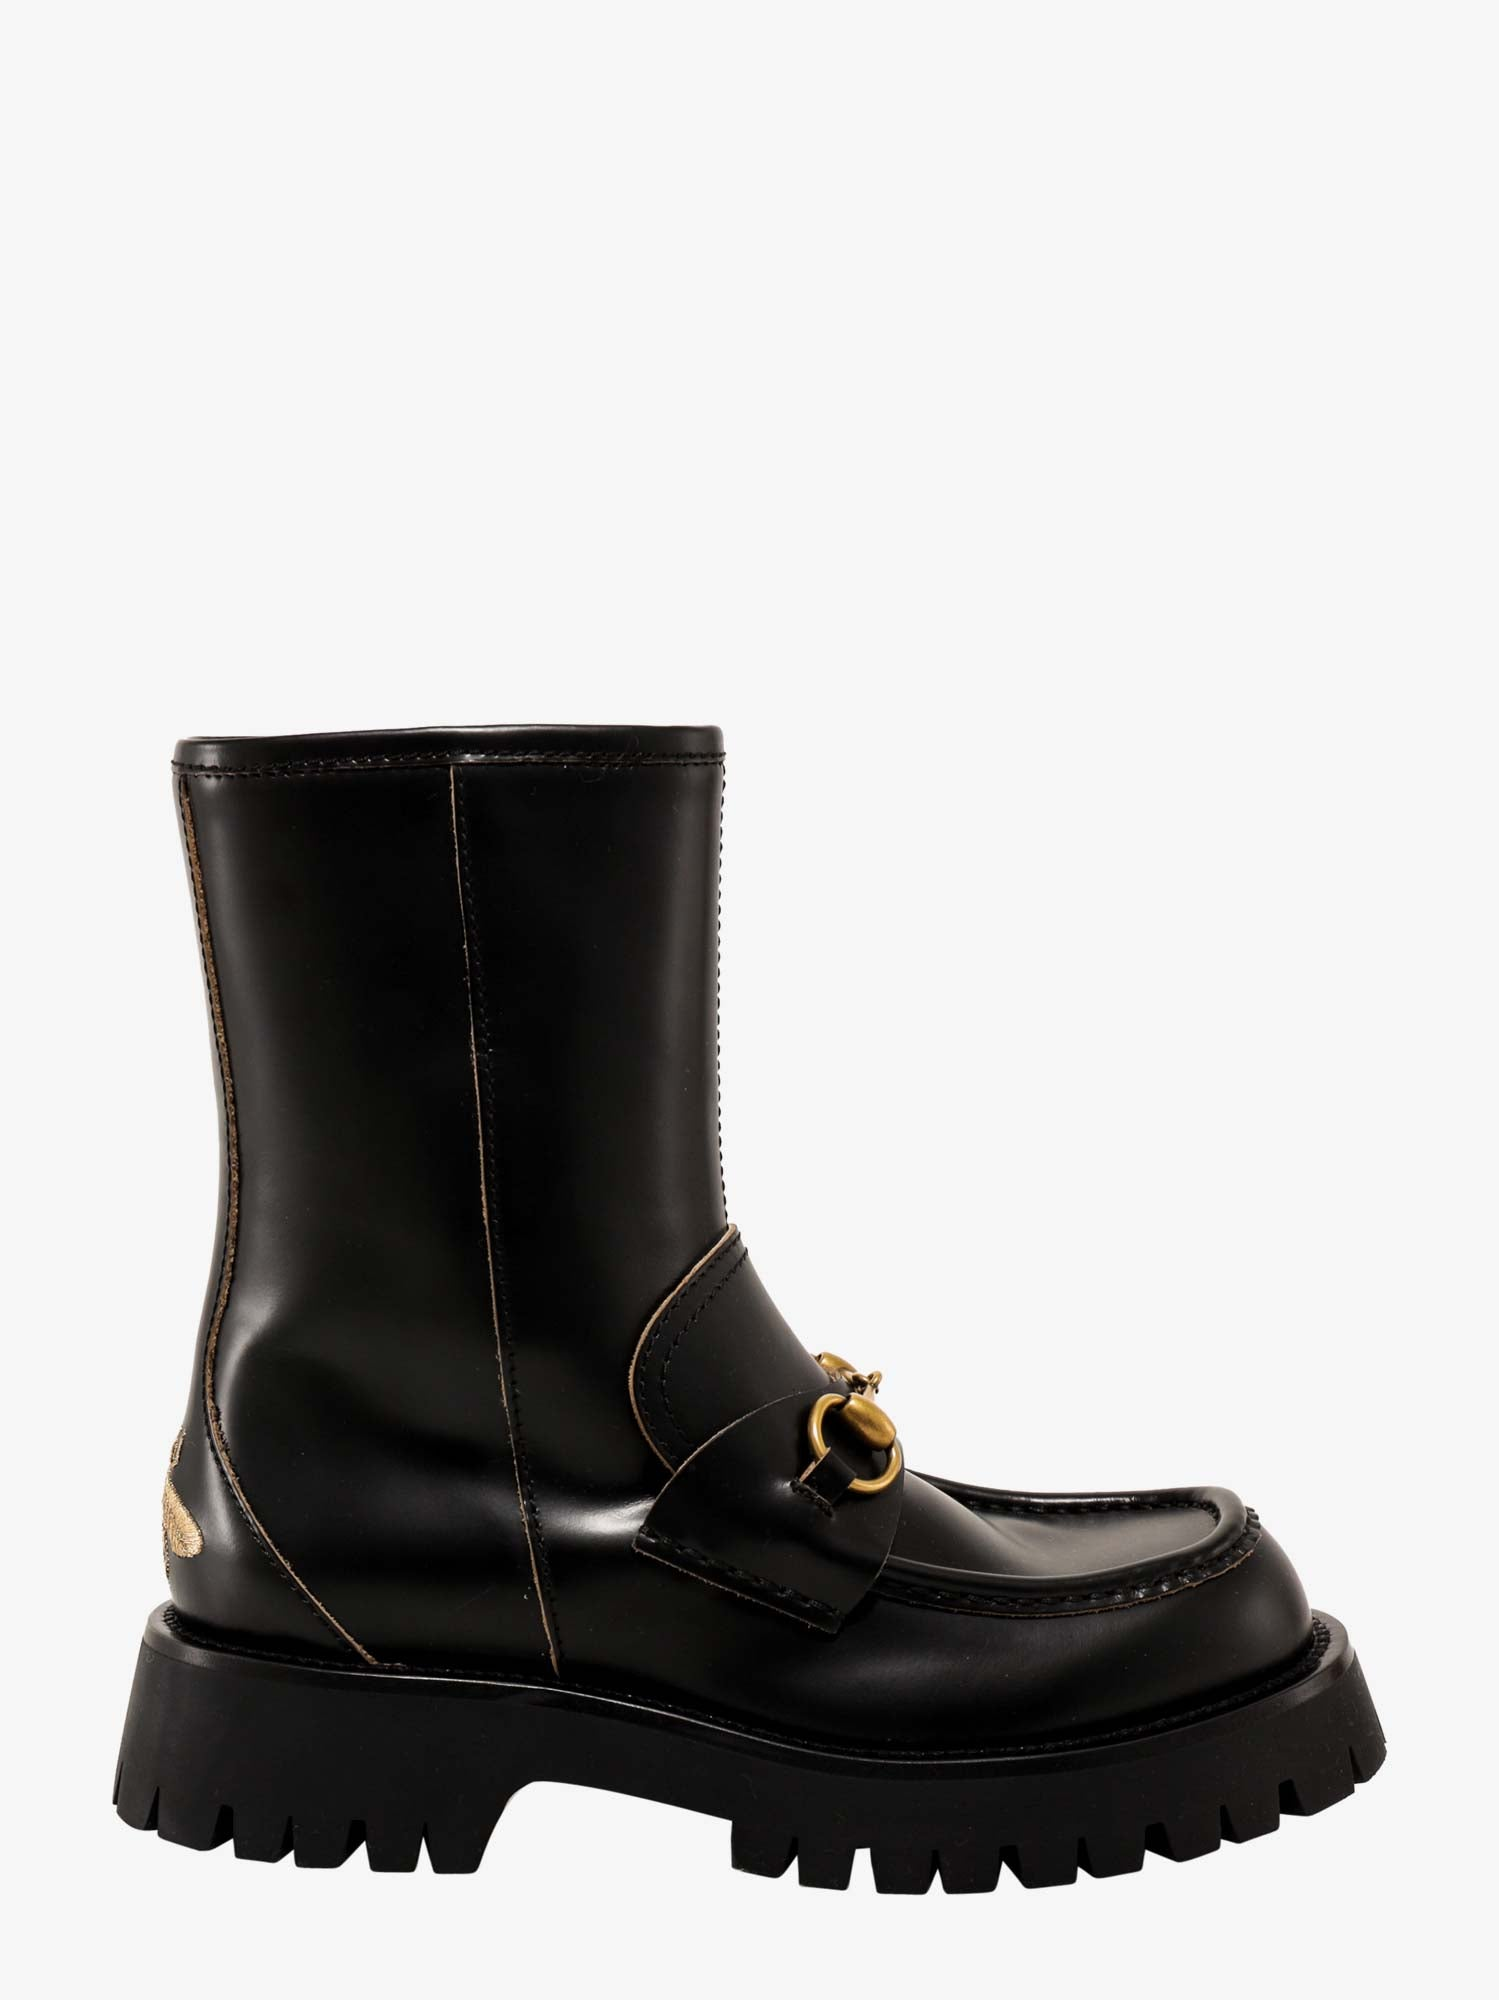 ANKLE BOOTS – GUCCI – WOMAN